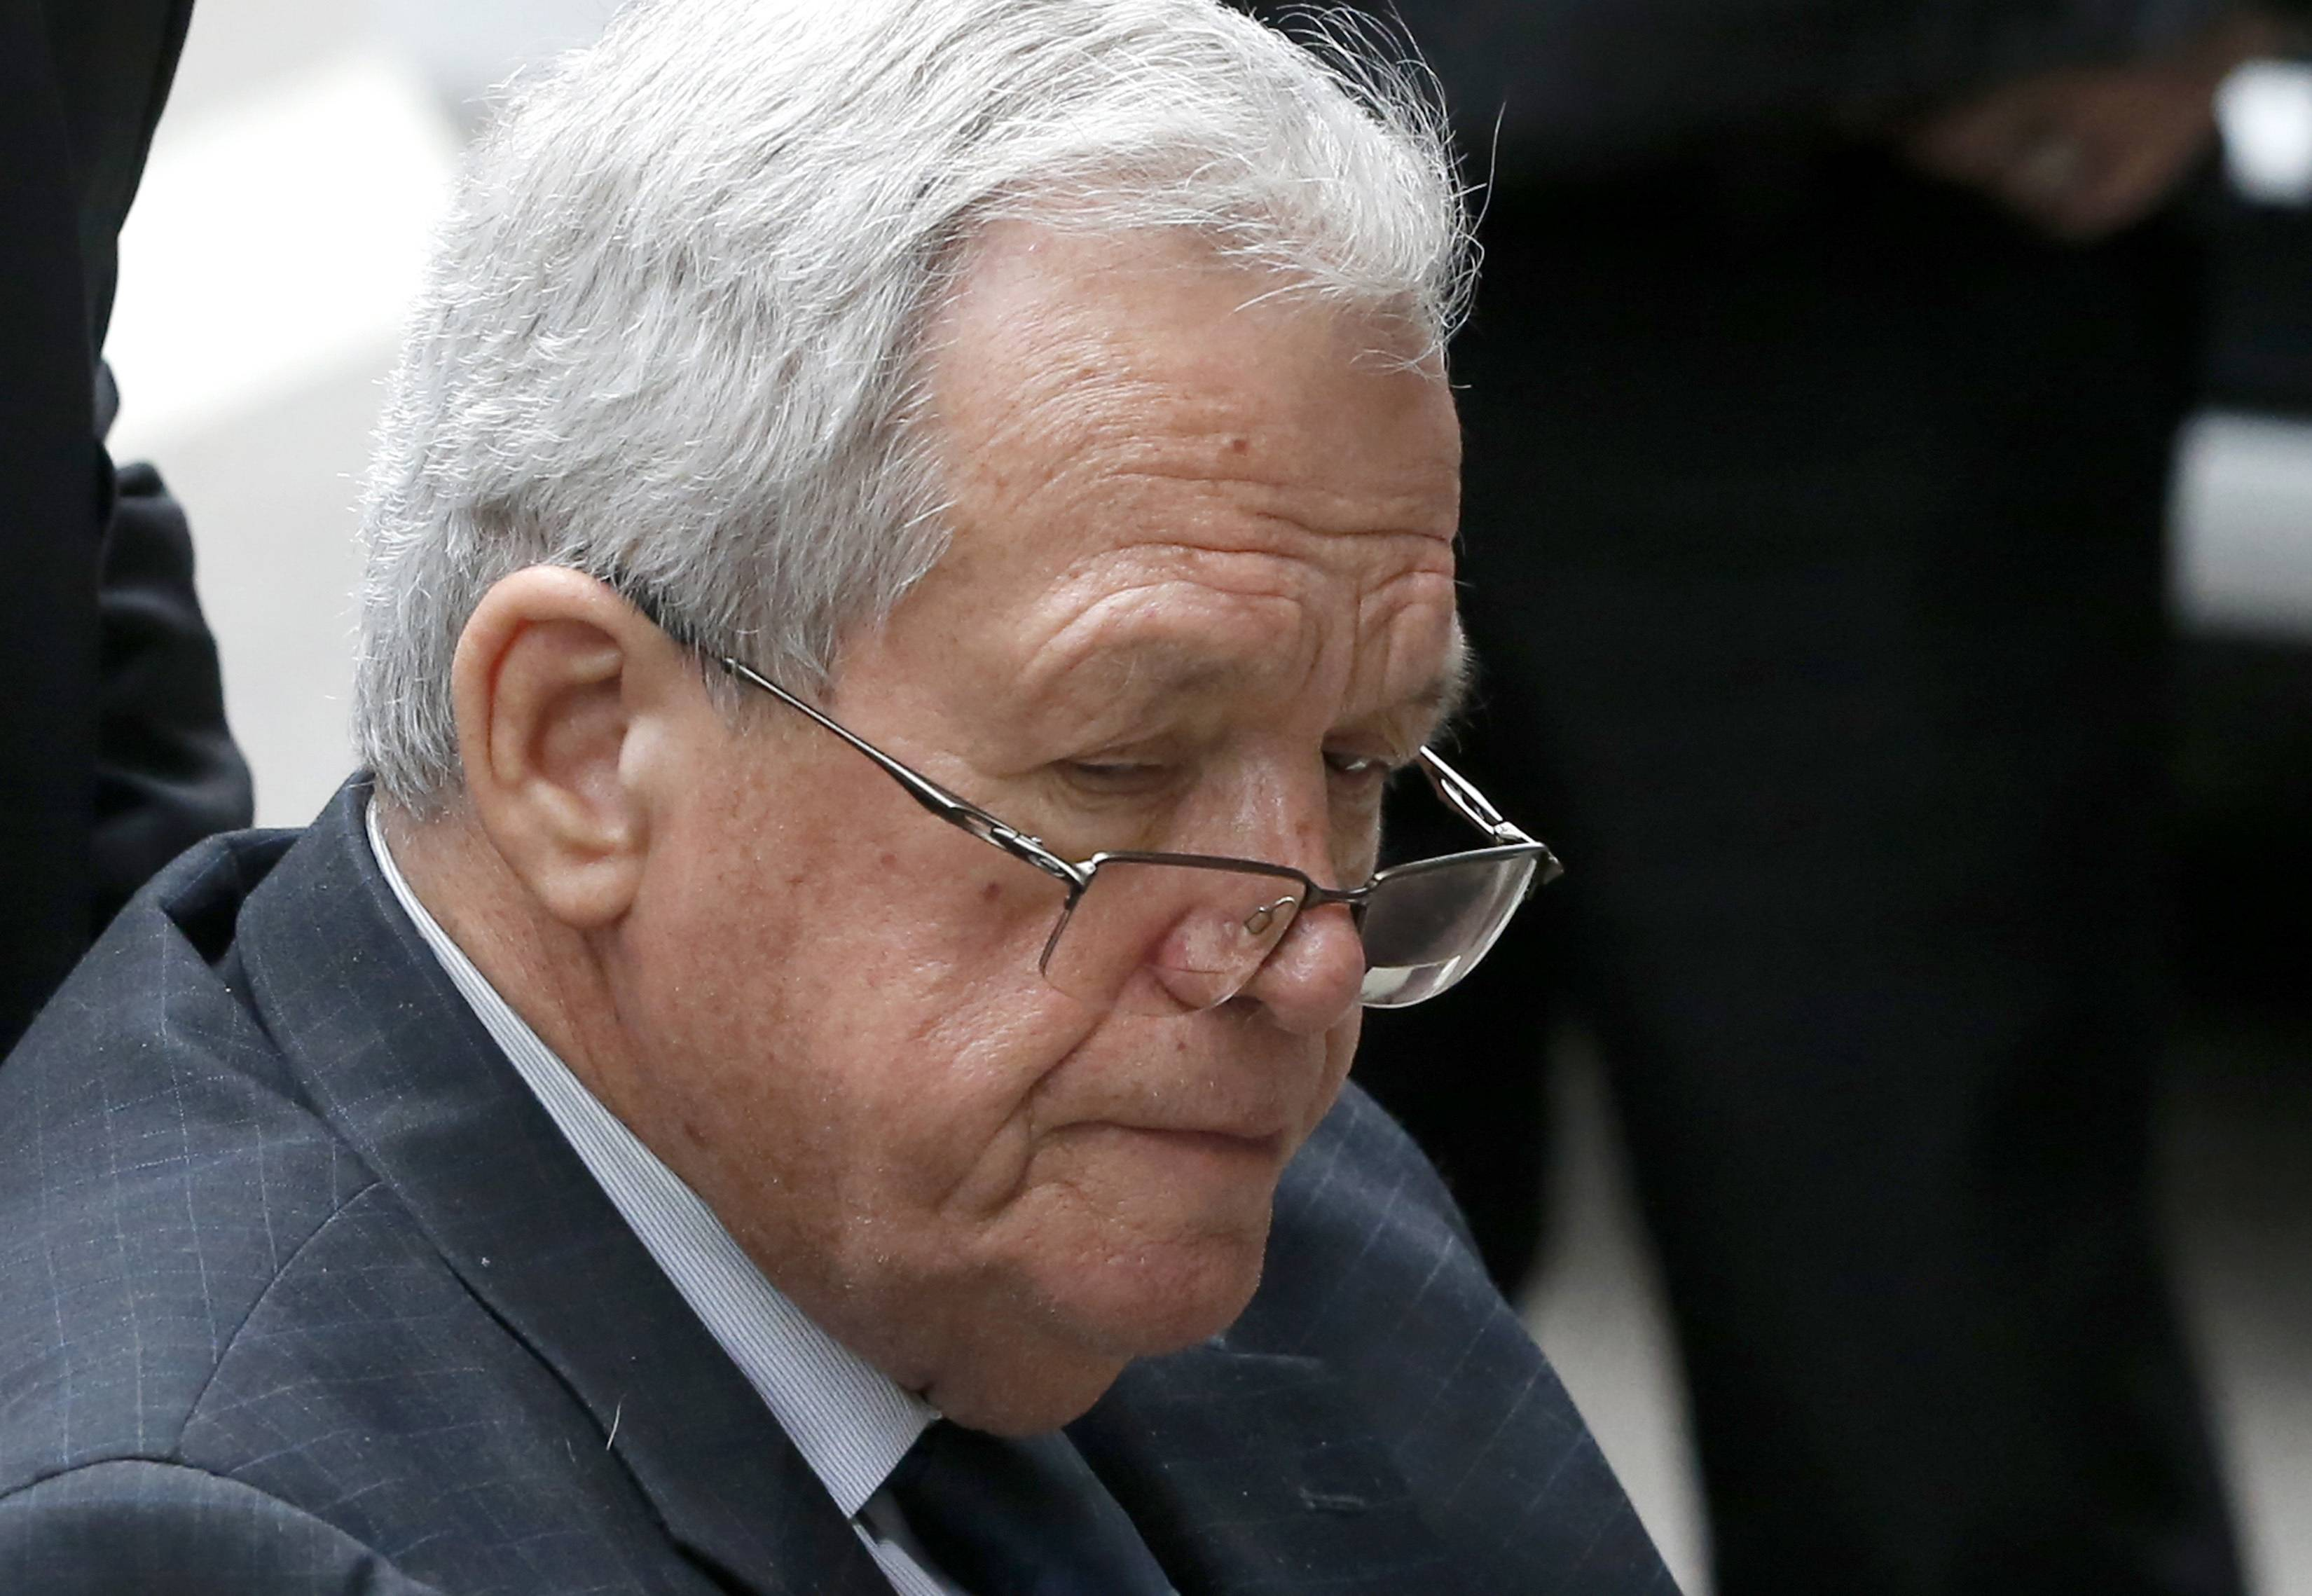 What Hastert's life will be like in federal prison